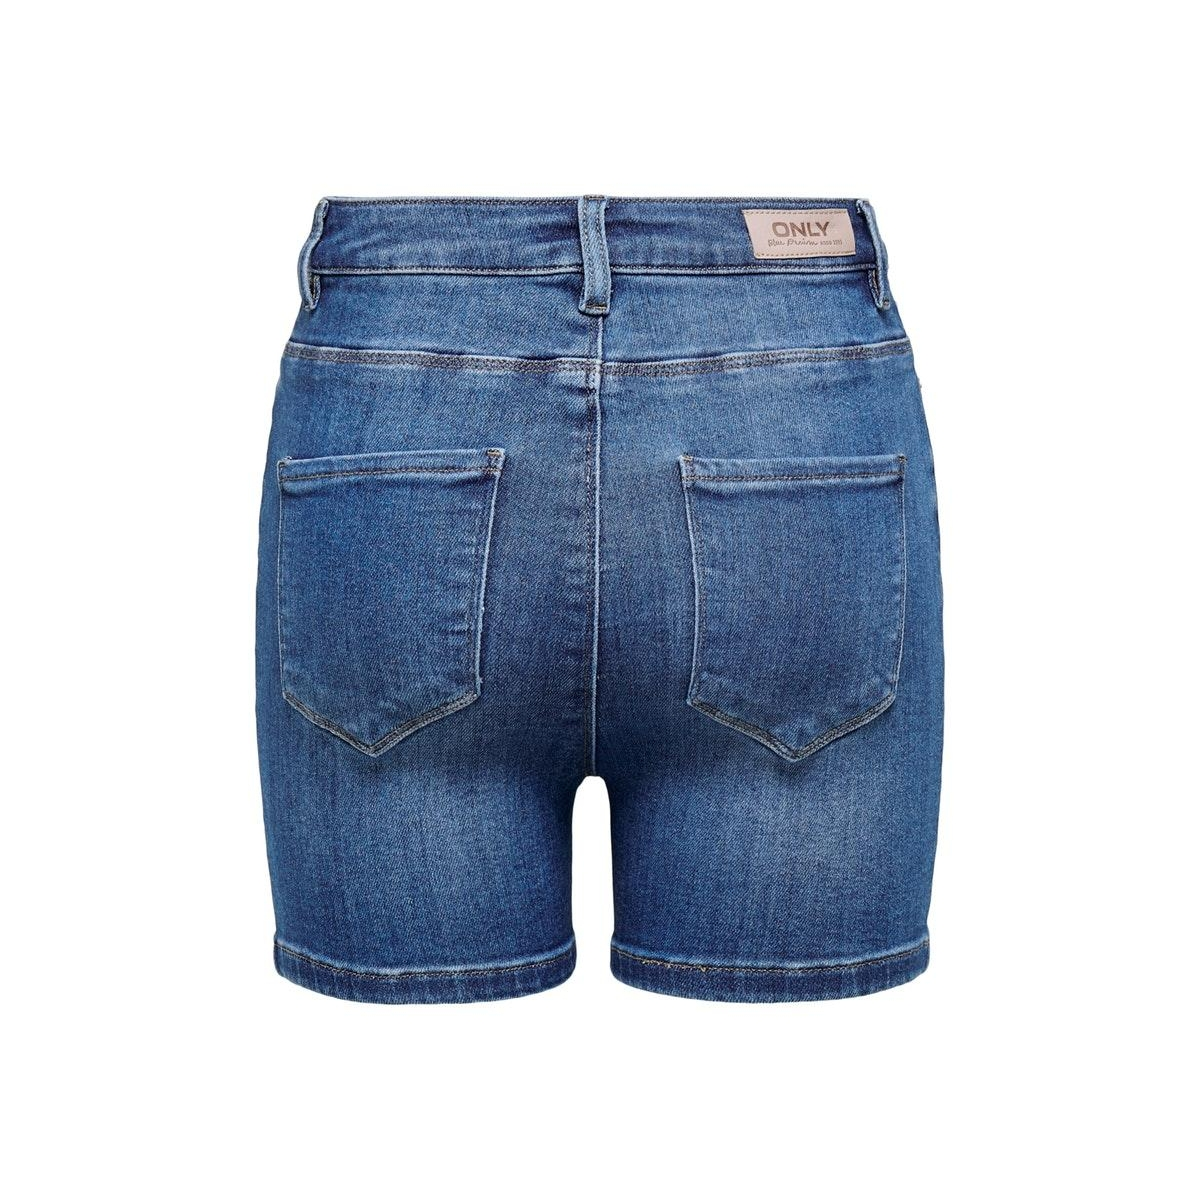 onlmila hw shorts bb bj184-2 15198253 only korte broek medium blue denim